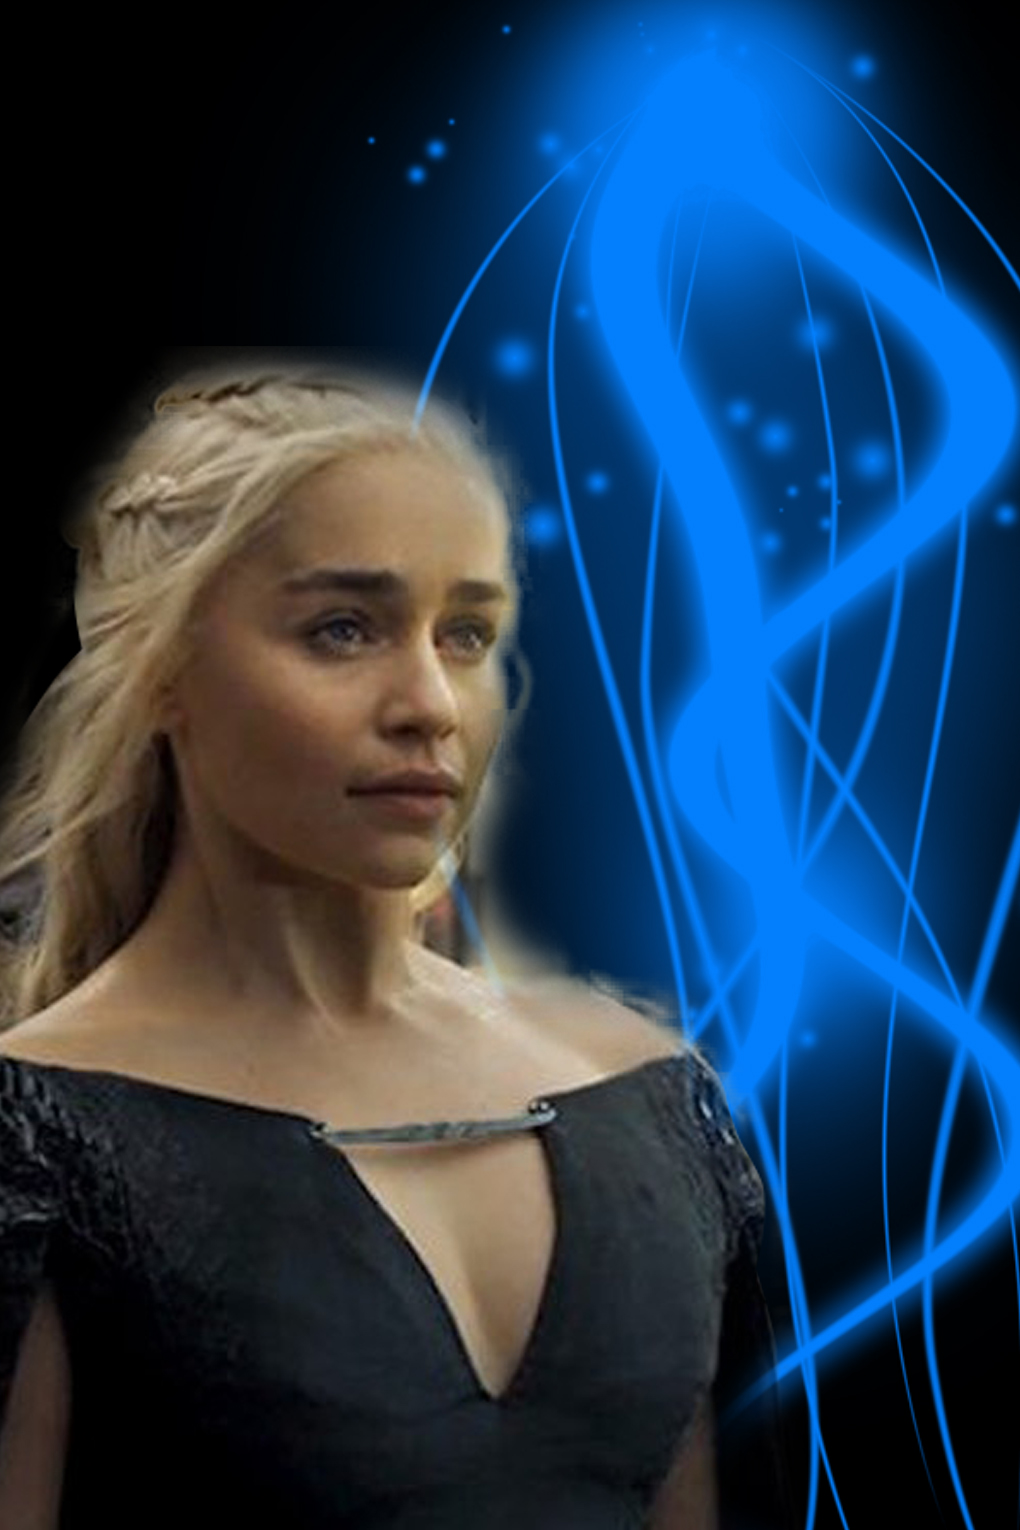 Ika Game Of Thrones Free Ios Wallpaper Daenerys Targaryen